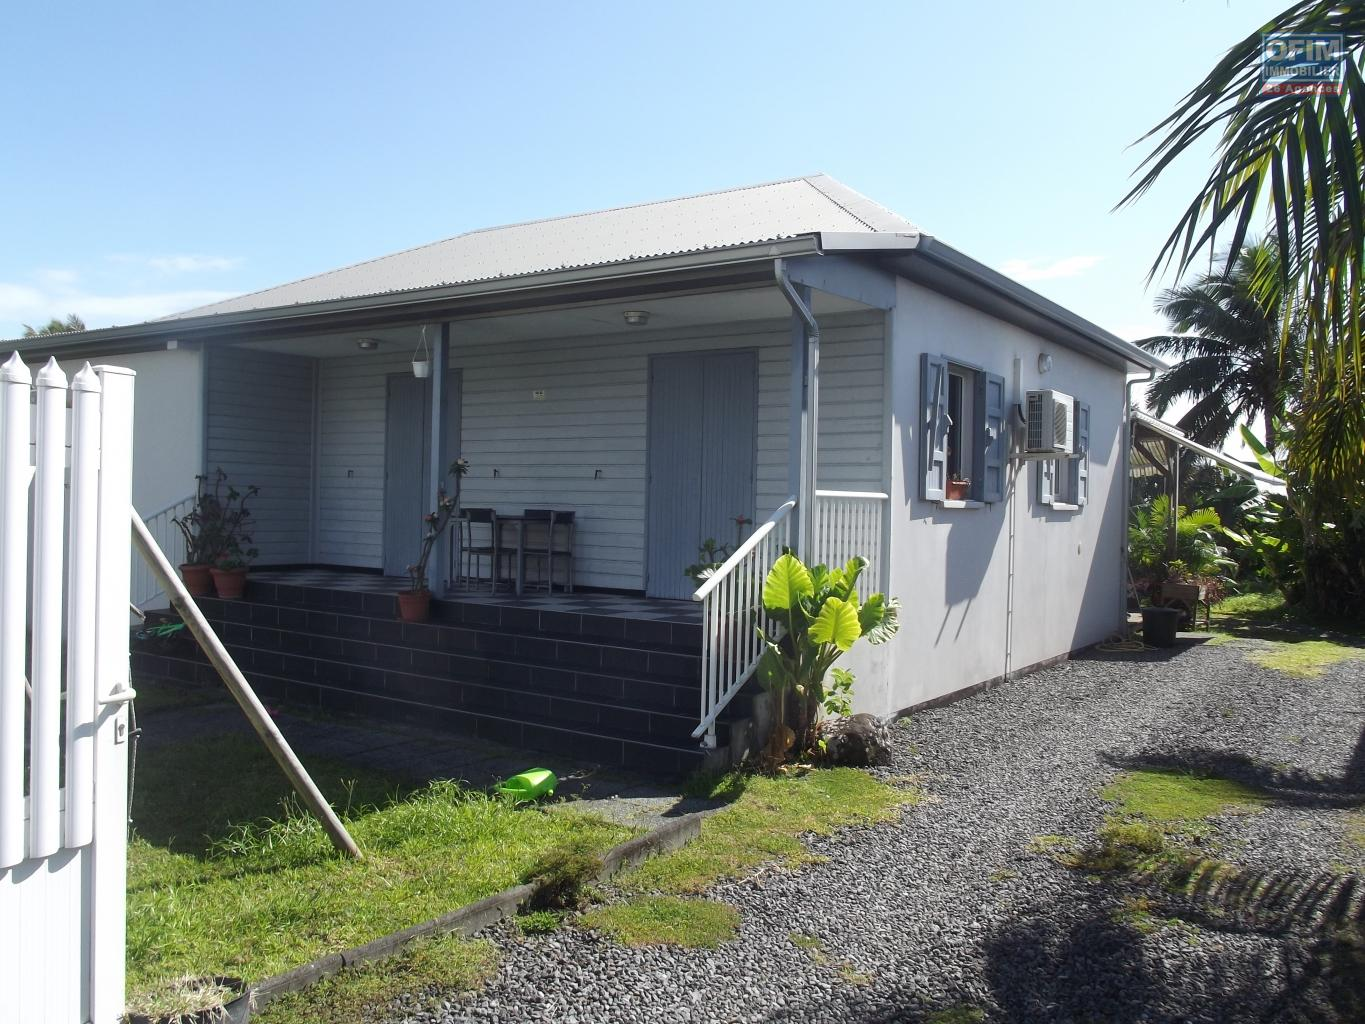 Location mobilhome ile de la reunion